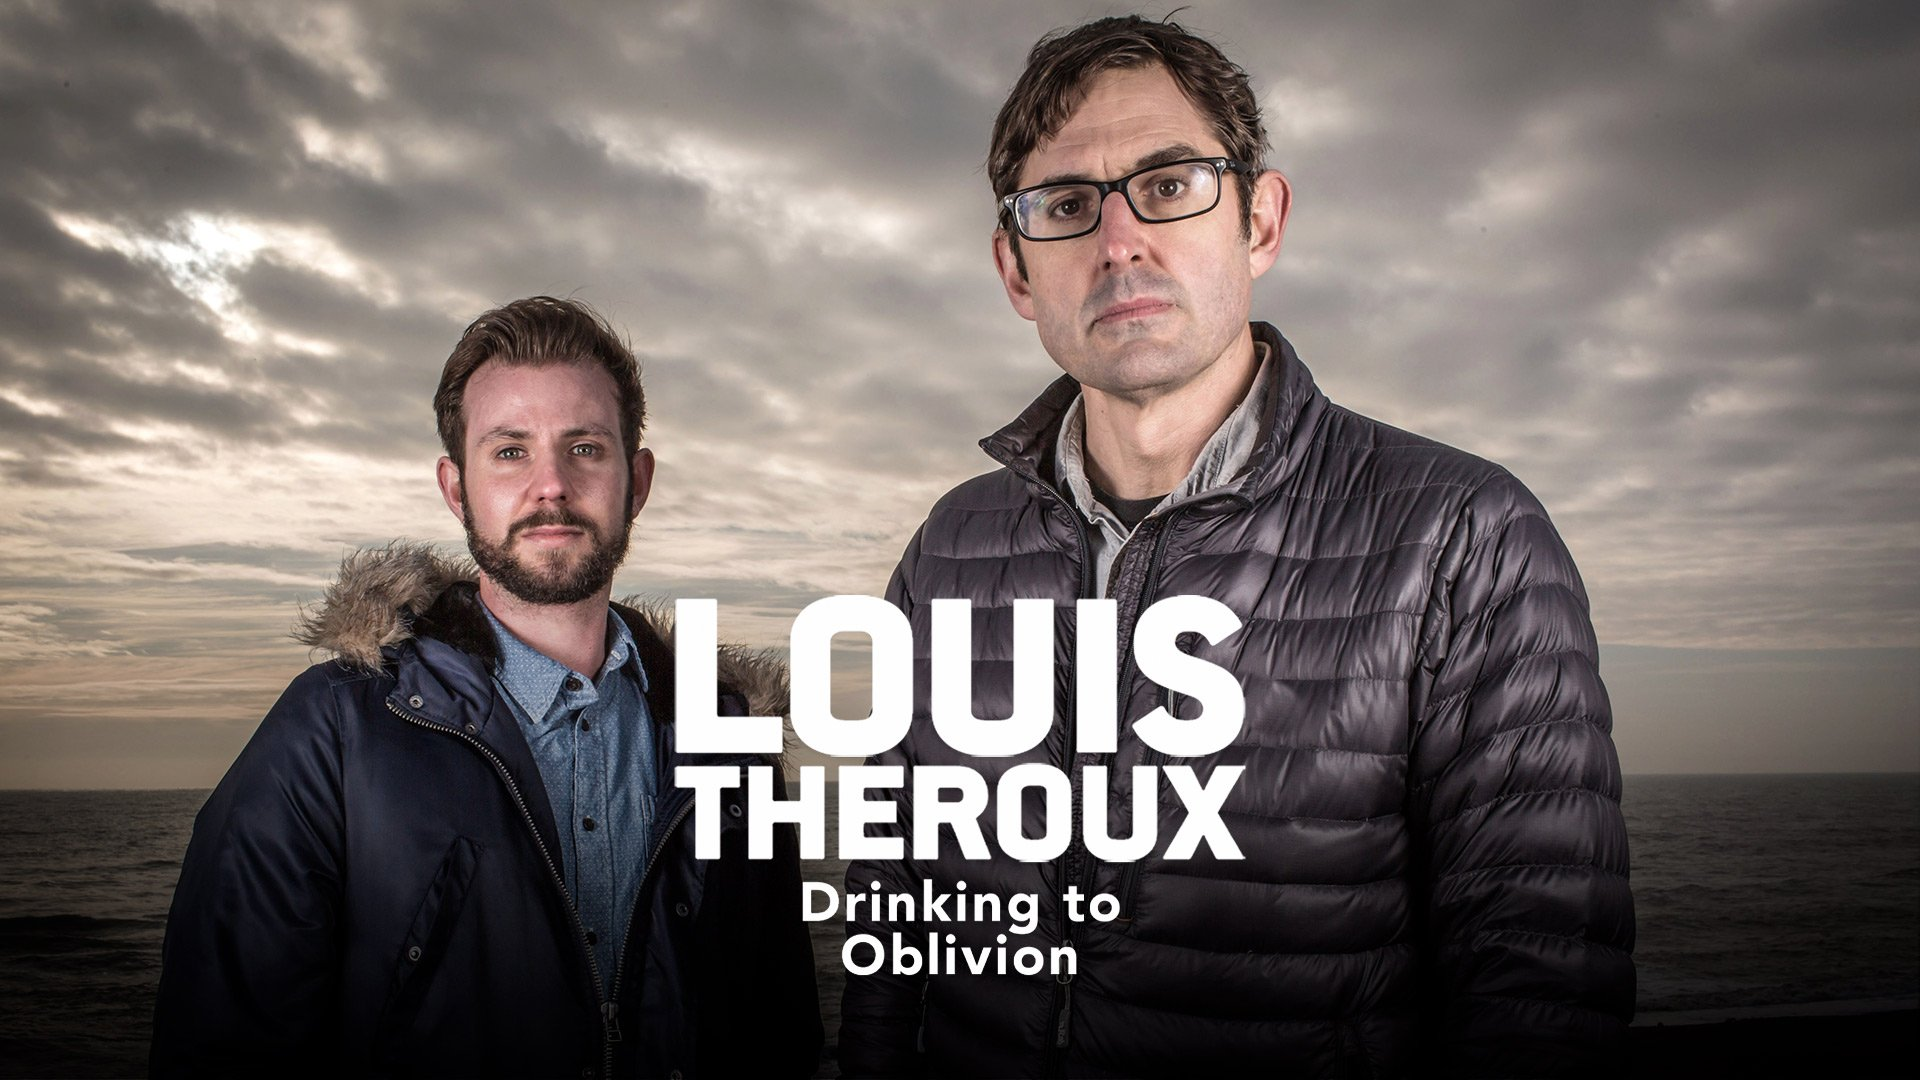 Louis Theroux: Drinking to Oblivion on BritBox UK